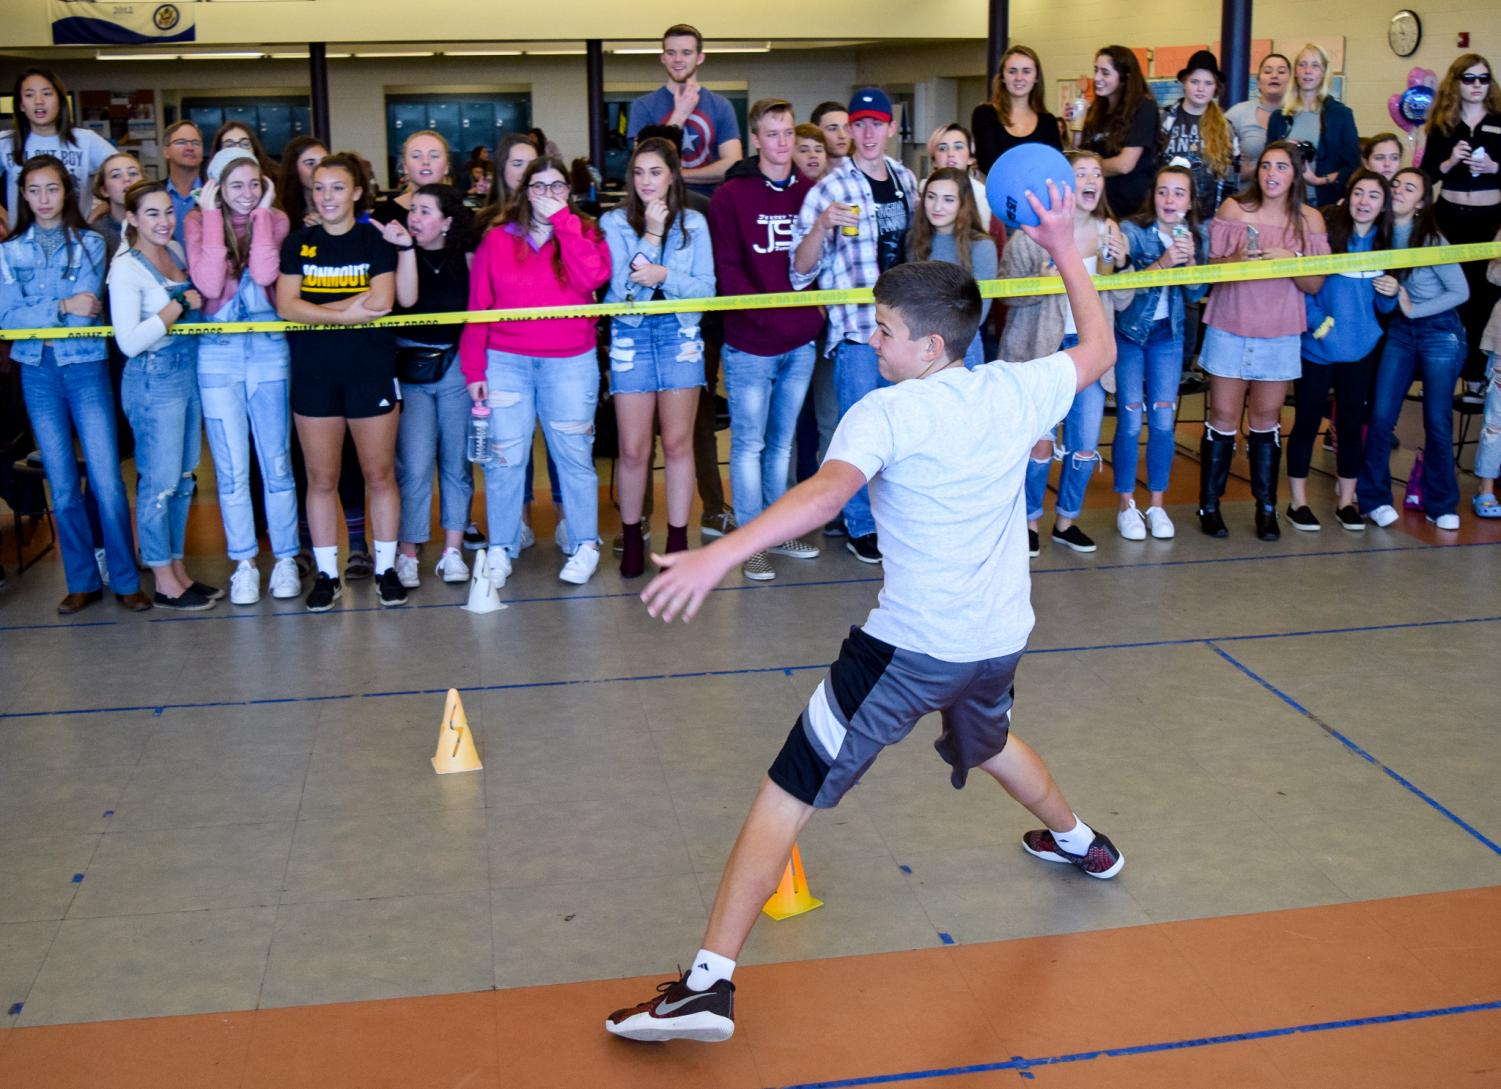 Students watch junior Matt Emery of Ocean in the first place dodgeball matchup against the sophomores.